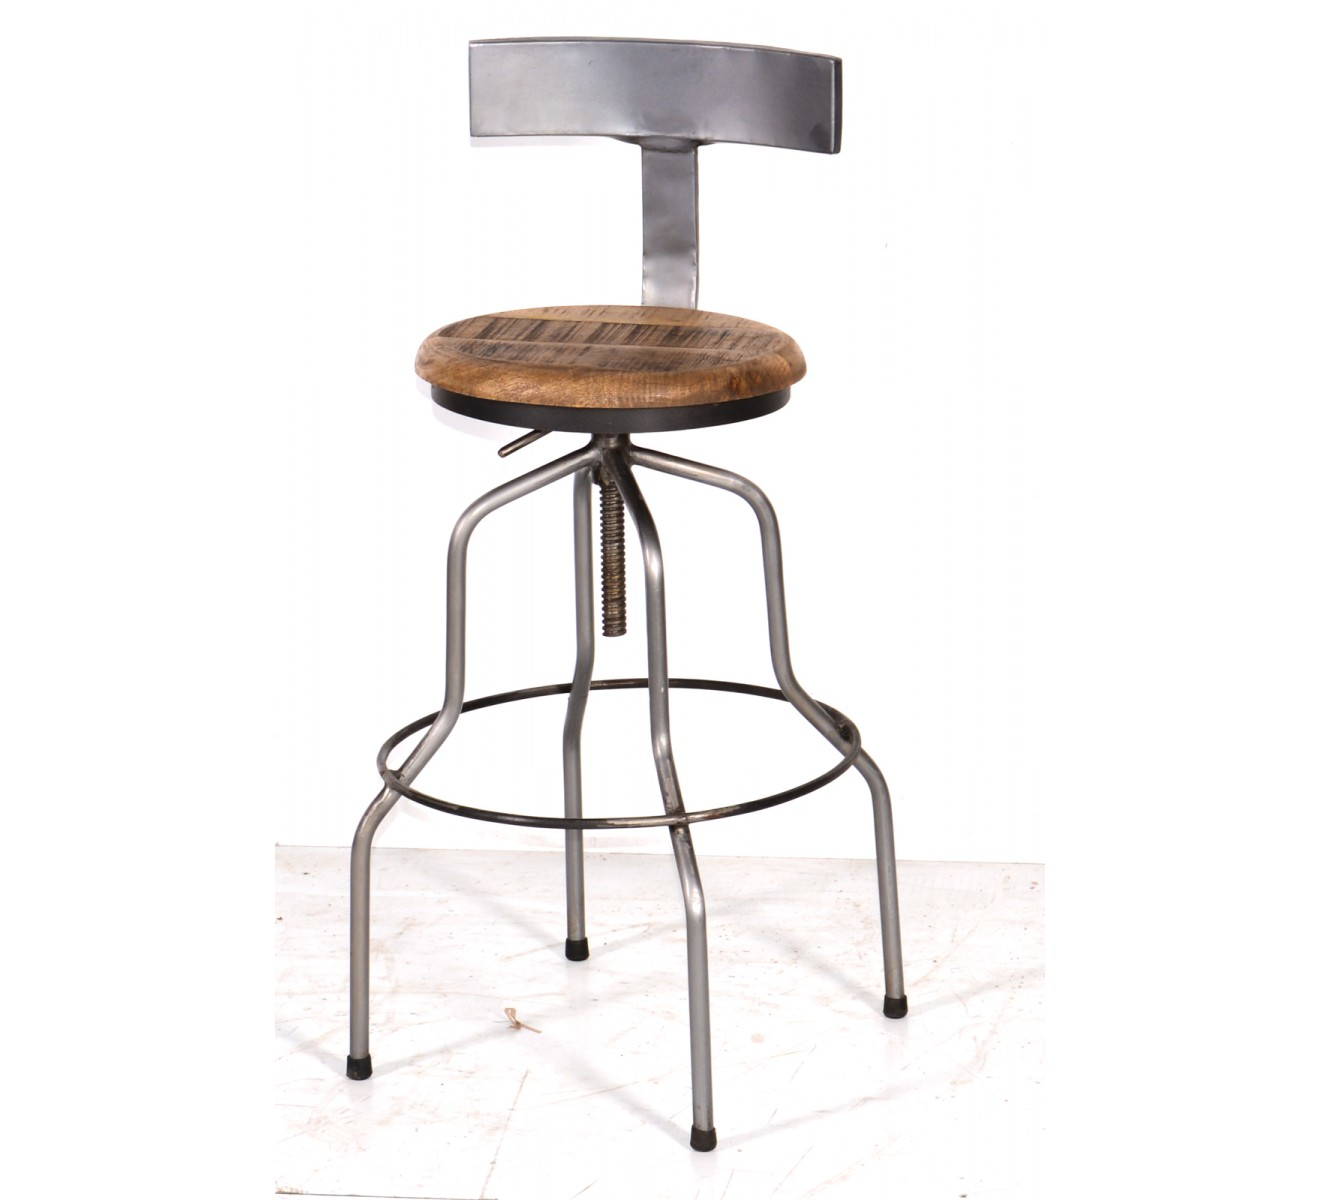 tabouret de bar m tal et bois industriel r glable 39 atelier grey 39 6949. Black Bedroom Furniture Sets. Home Design Ideas